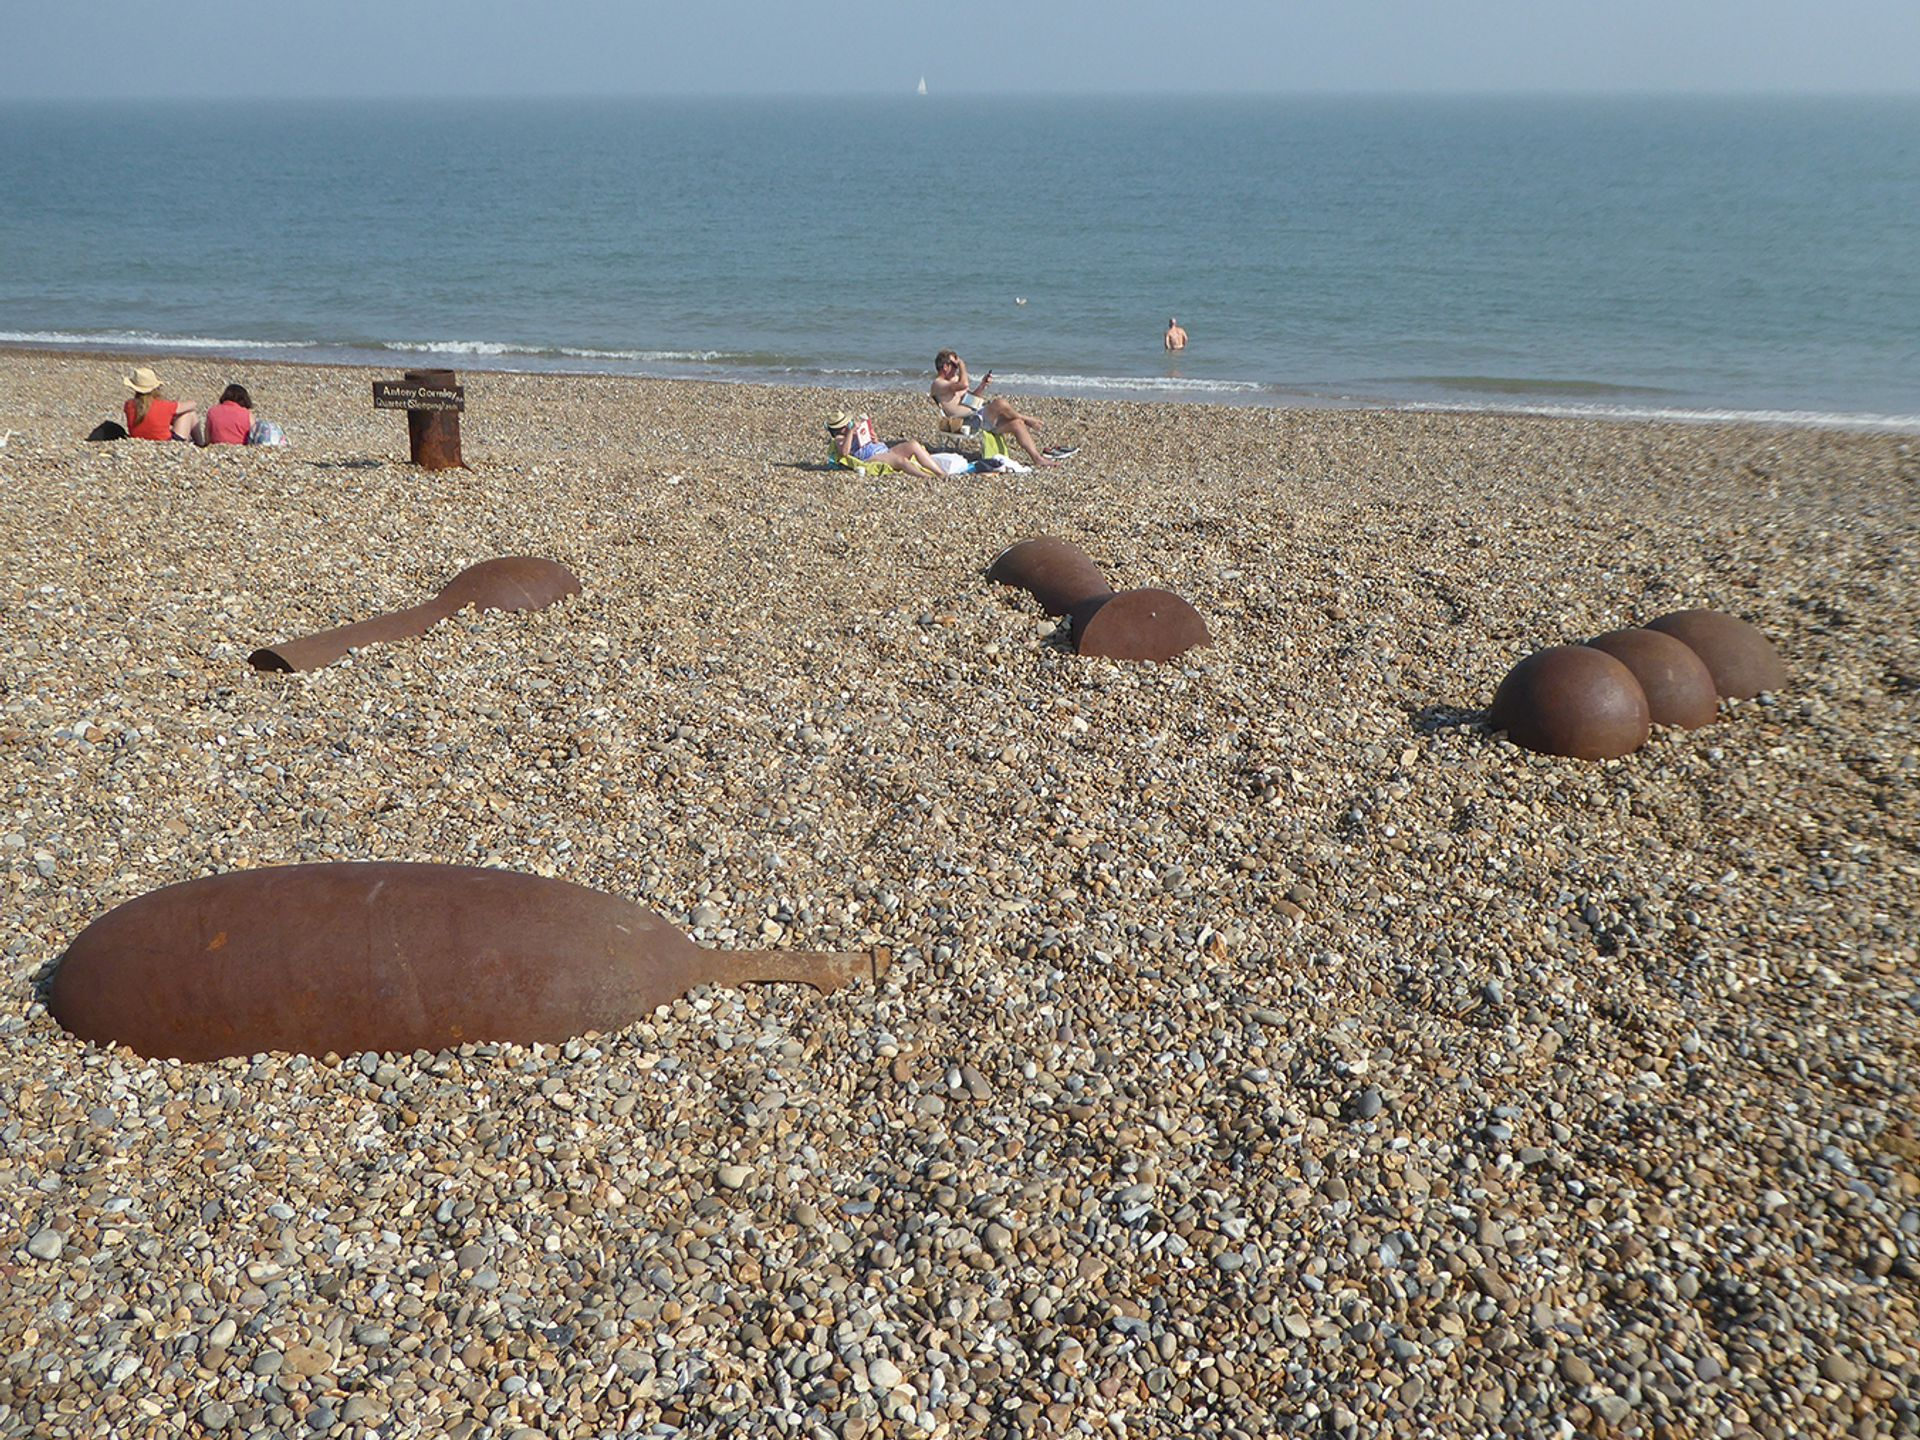 """Quartet (2001) by Antony Gormley was likened to """"a collection of sex toys"""" by one Suffolk resident © Gerry Morris / Flickr"""